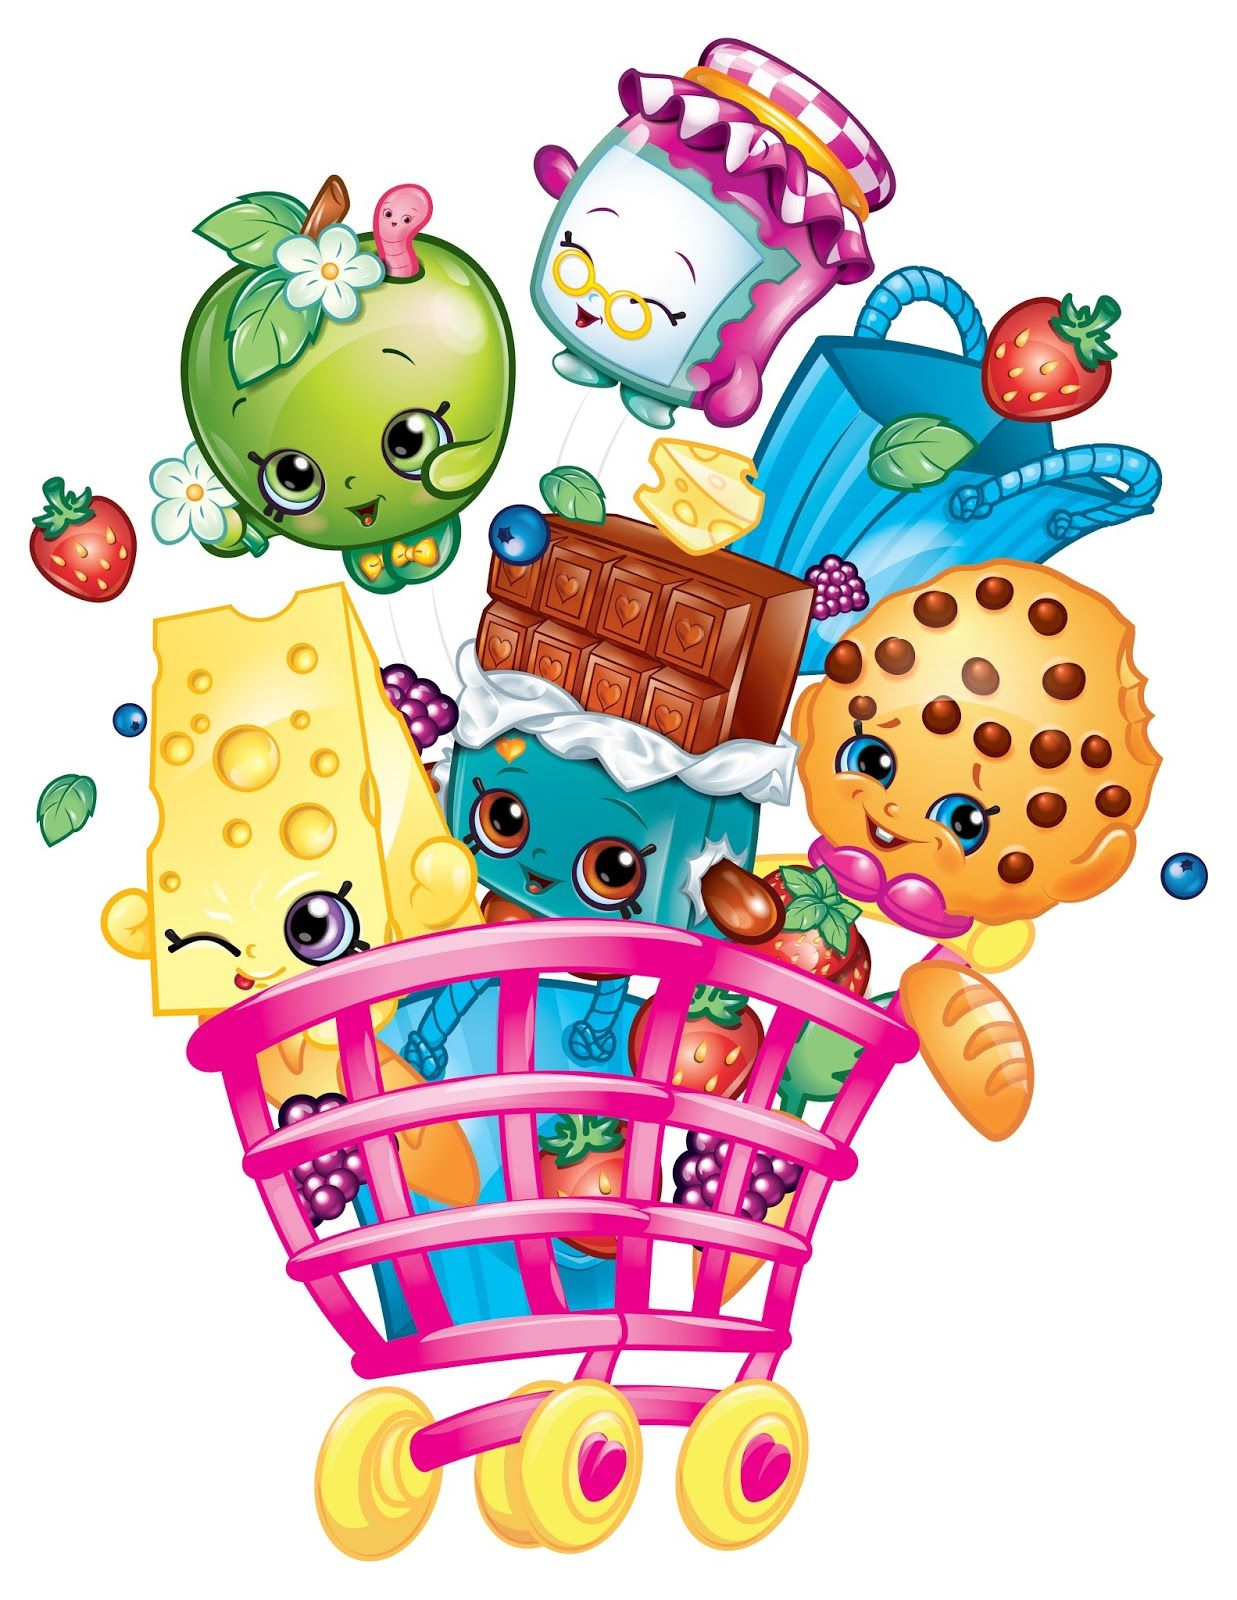 10 Mewarnai Gambar Shopkins Shopkins Party